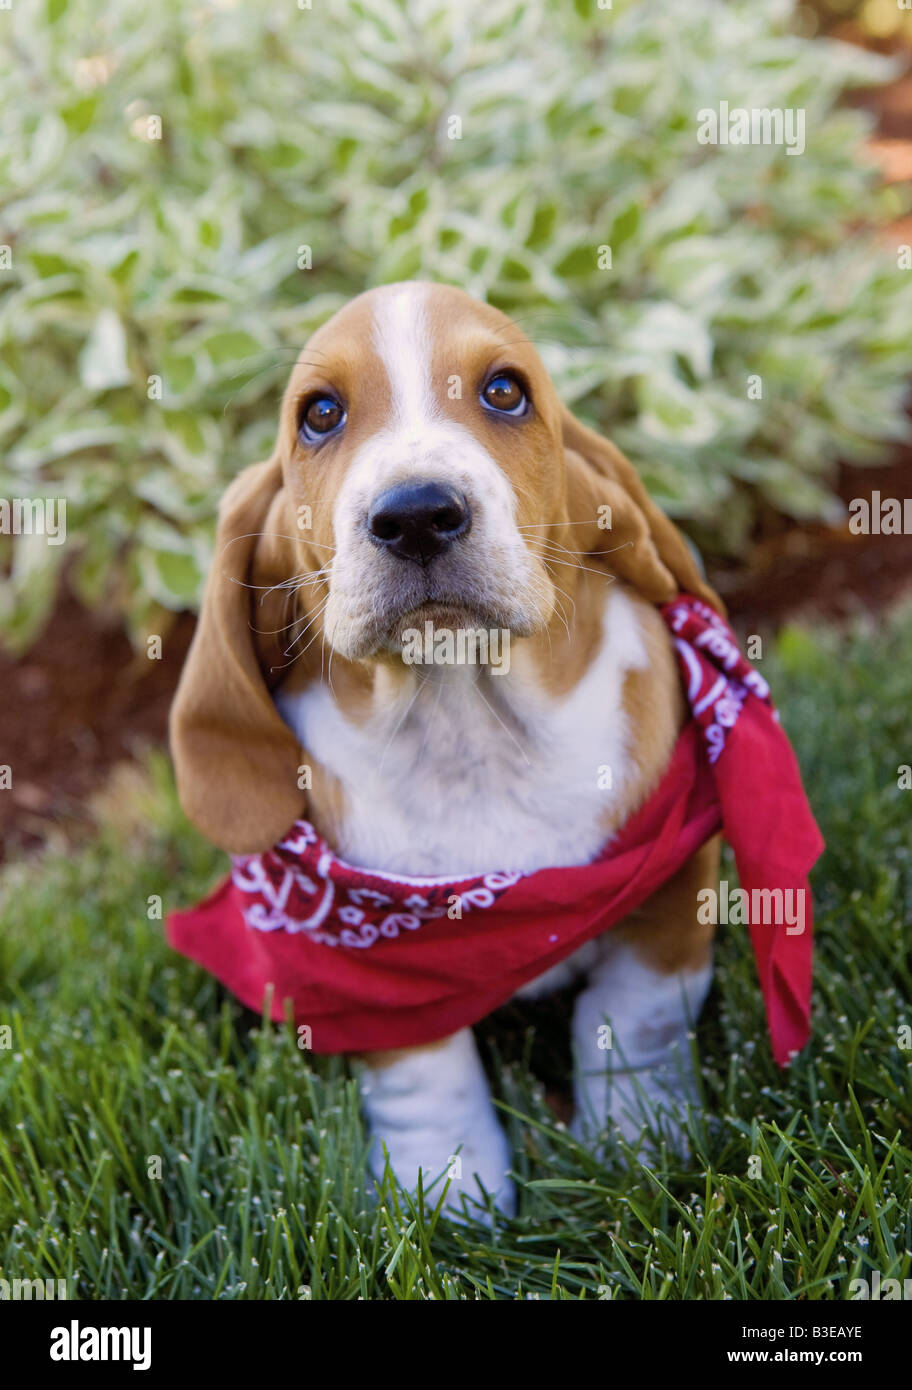 Cute Brown And White Basset Hound Puppy Outdoors In The